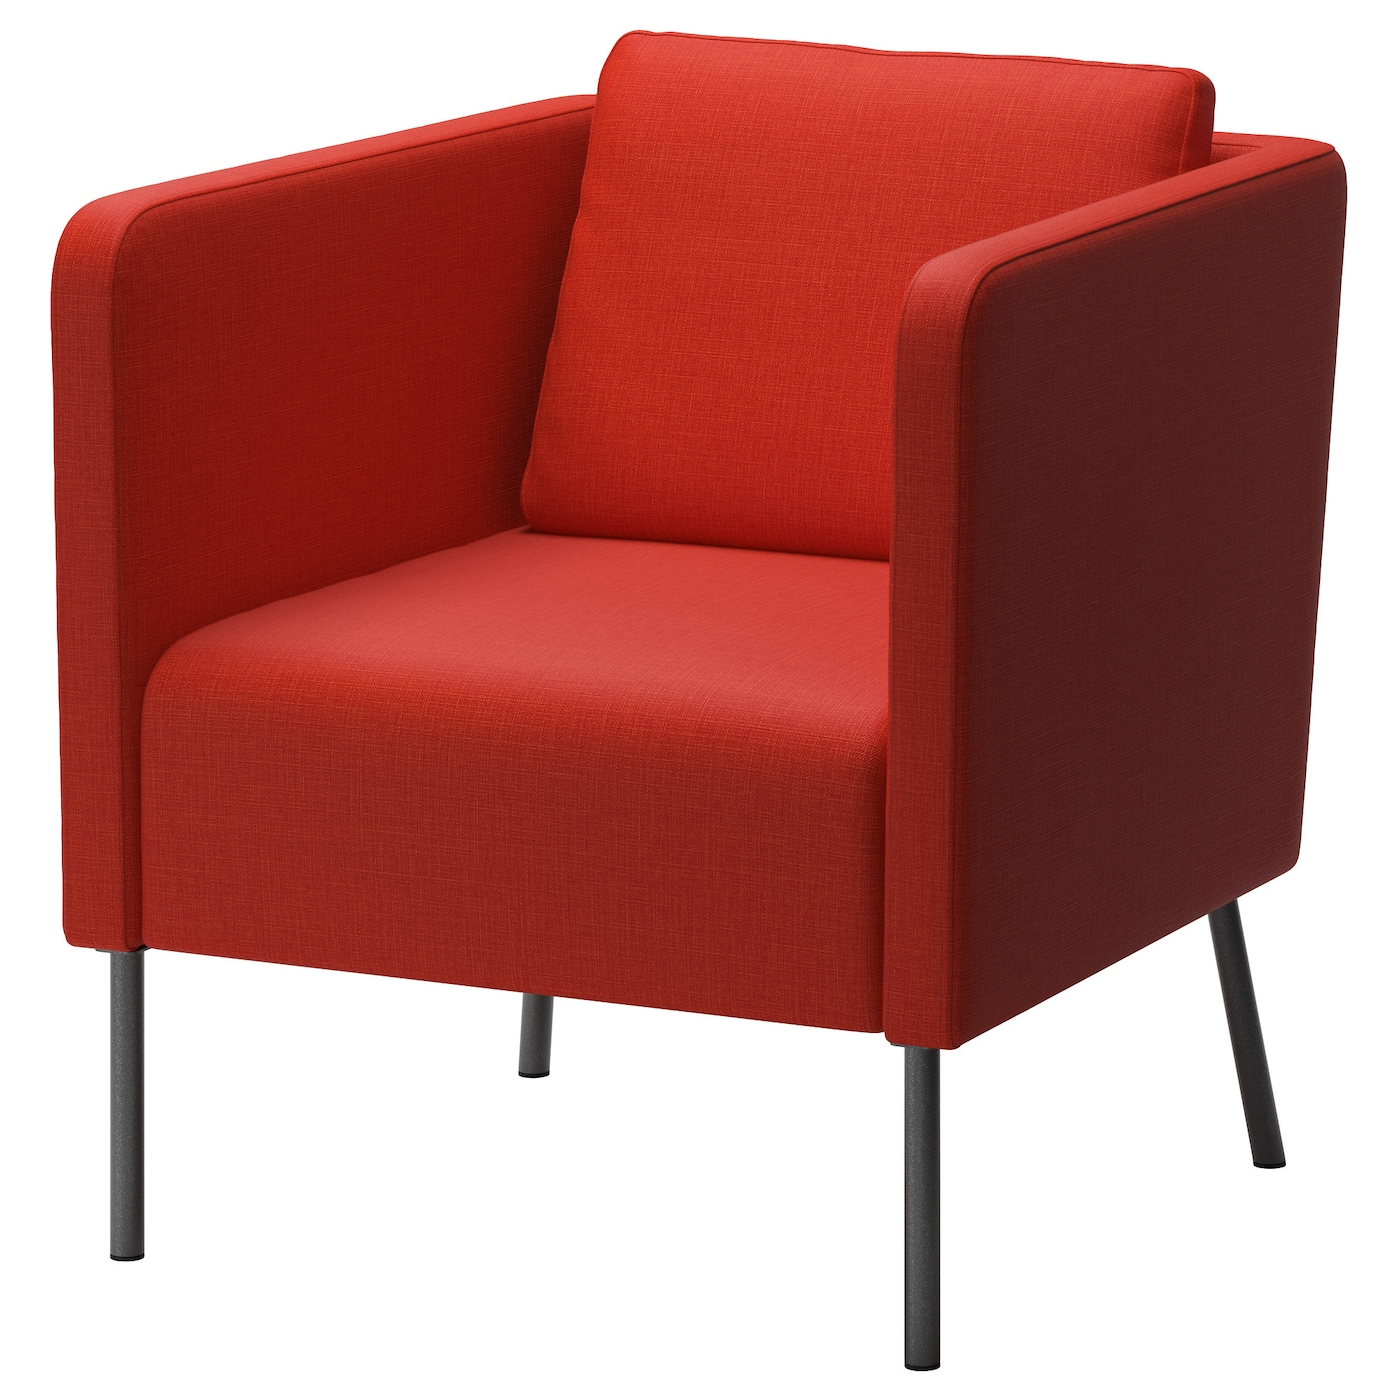 EKERÖ Armchair, Skiftebo orange - IKEA